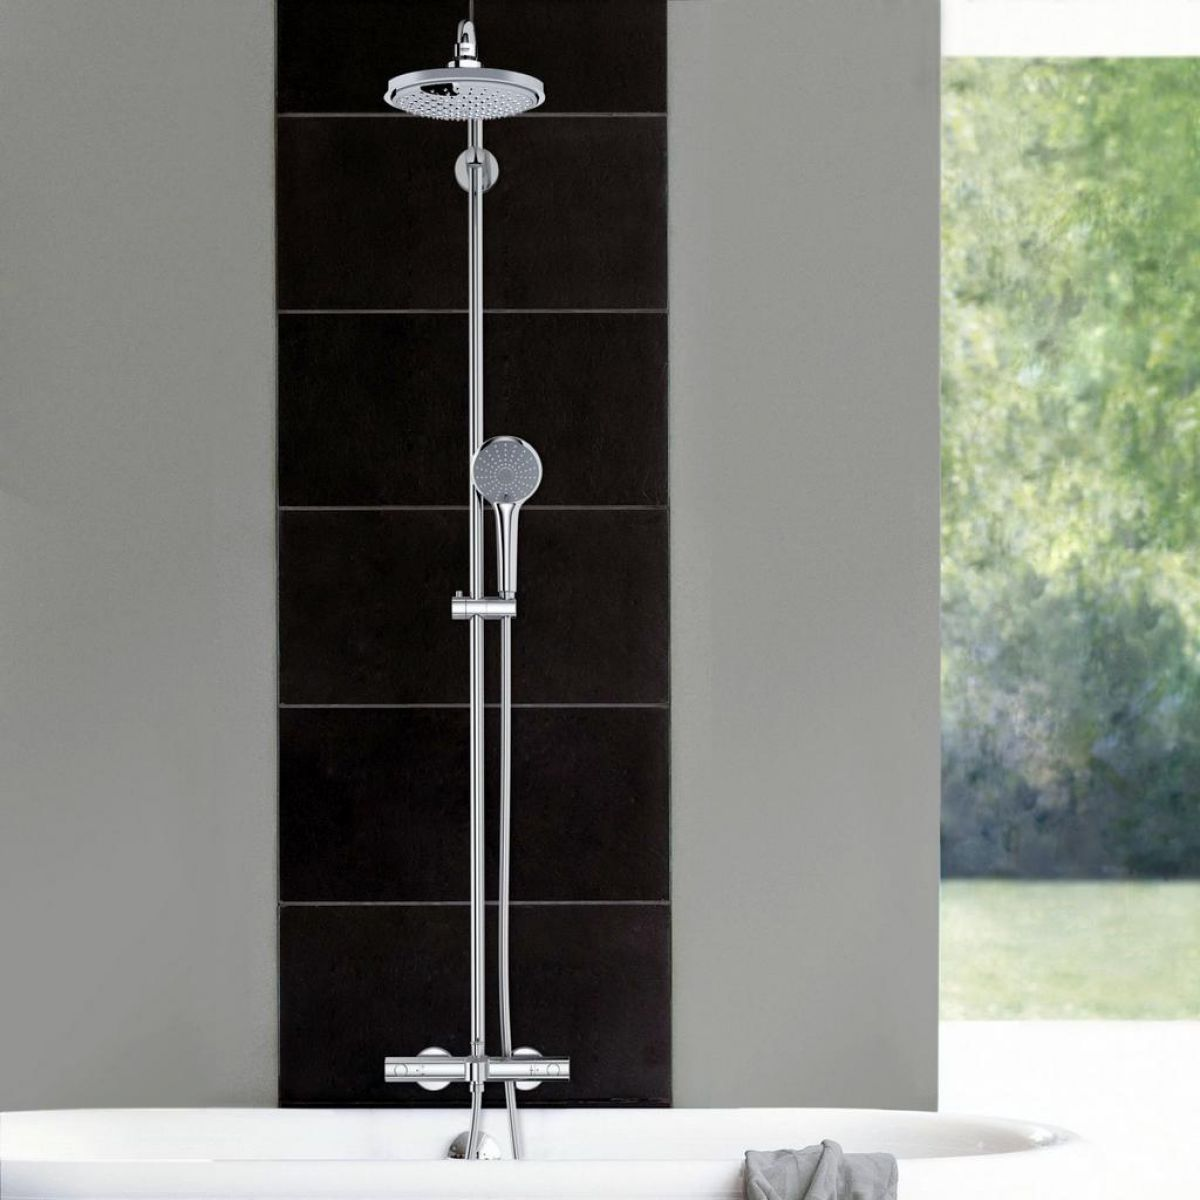 grohe euphoria system 180 thermostatic shower with bath filler uk bathrooms. Black Bedroom Furniture Sets. Home Design Ideas